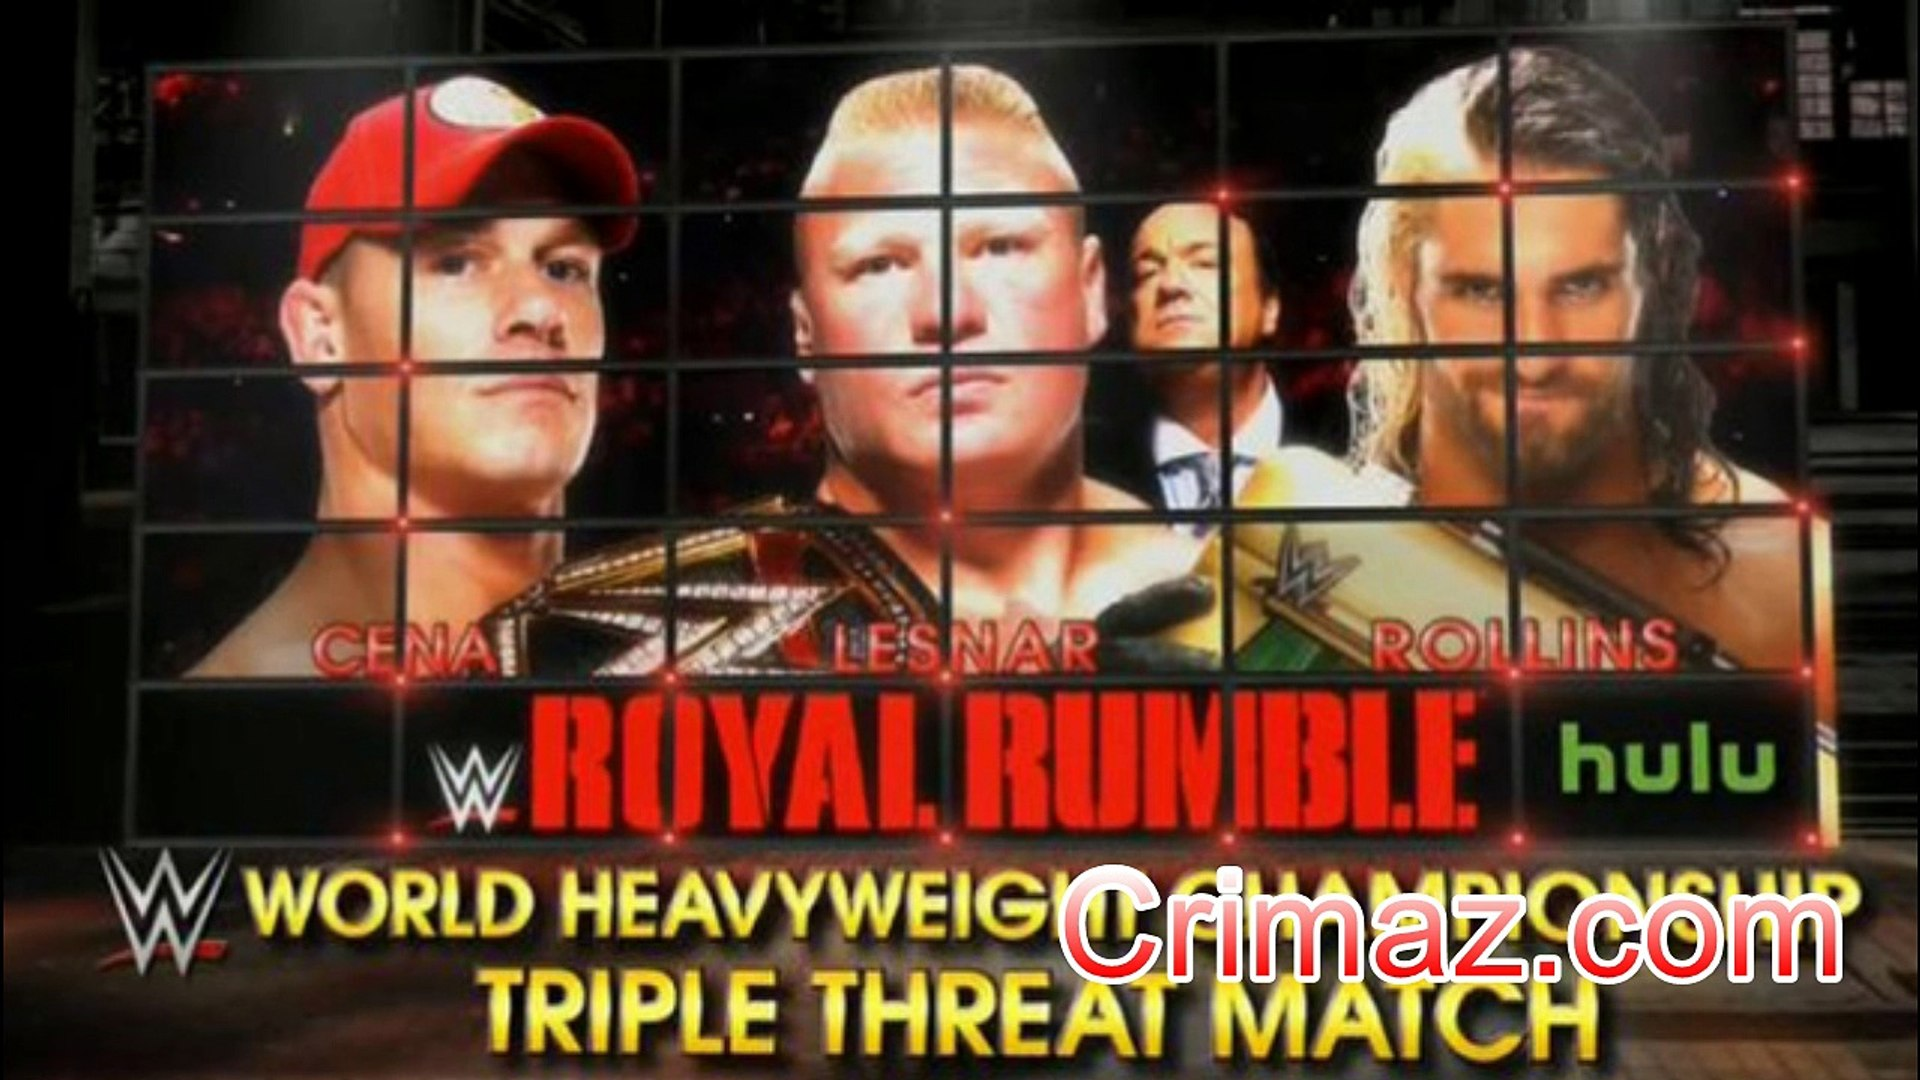 Watch WWE Royal Rumble 2015 - 1-25-2015 - January 25th 2015 Results